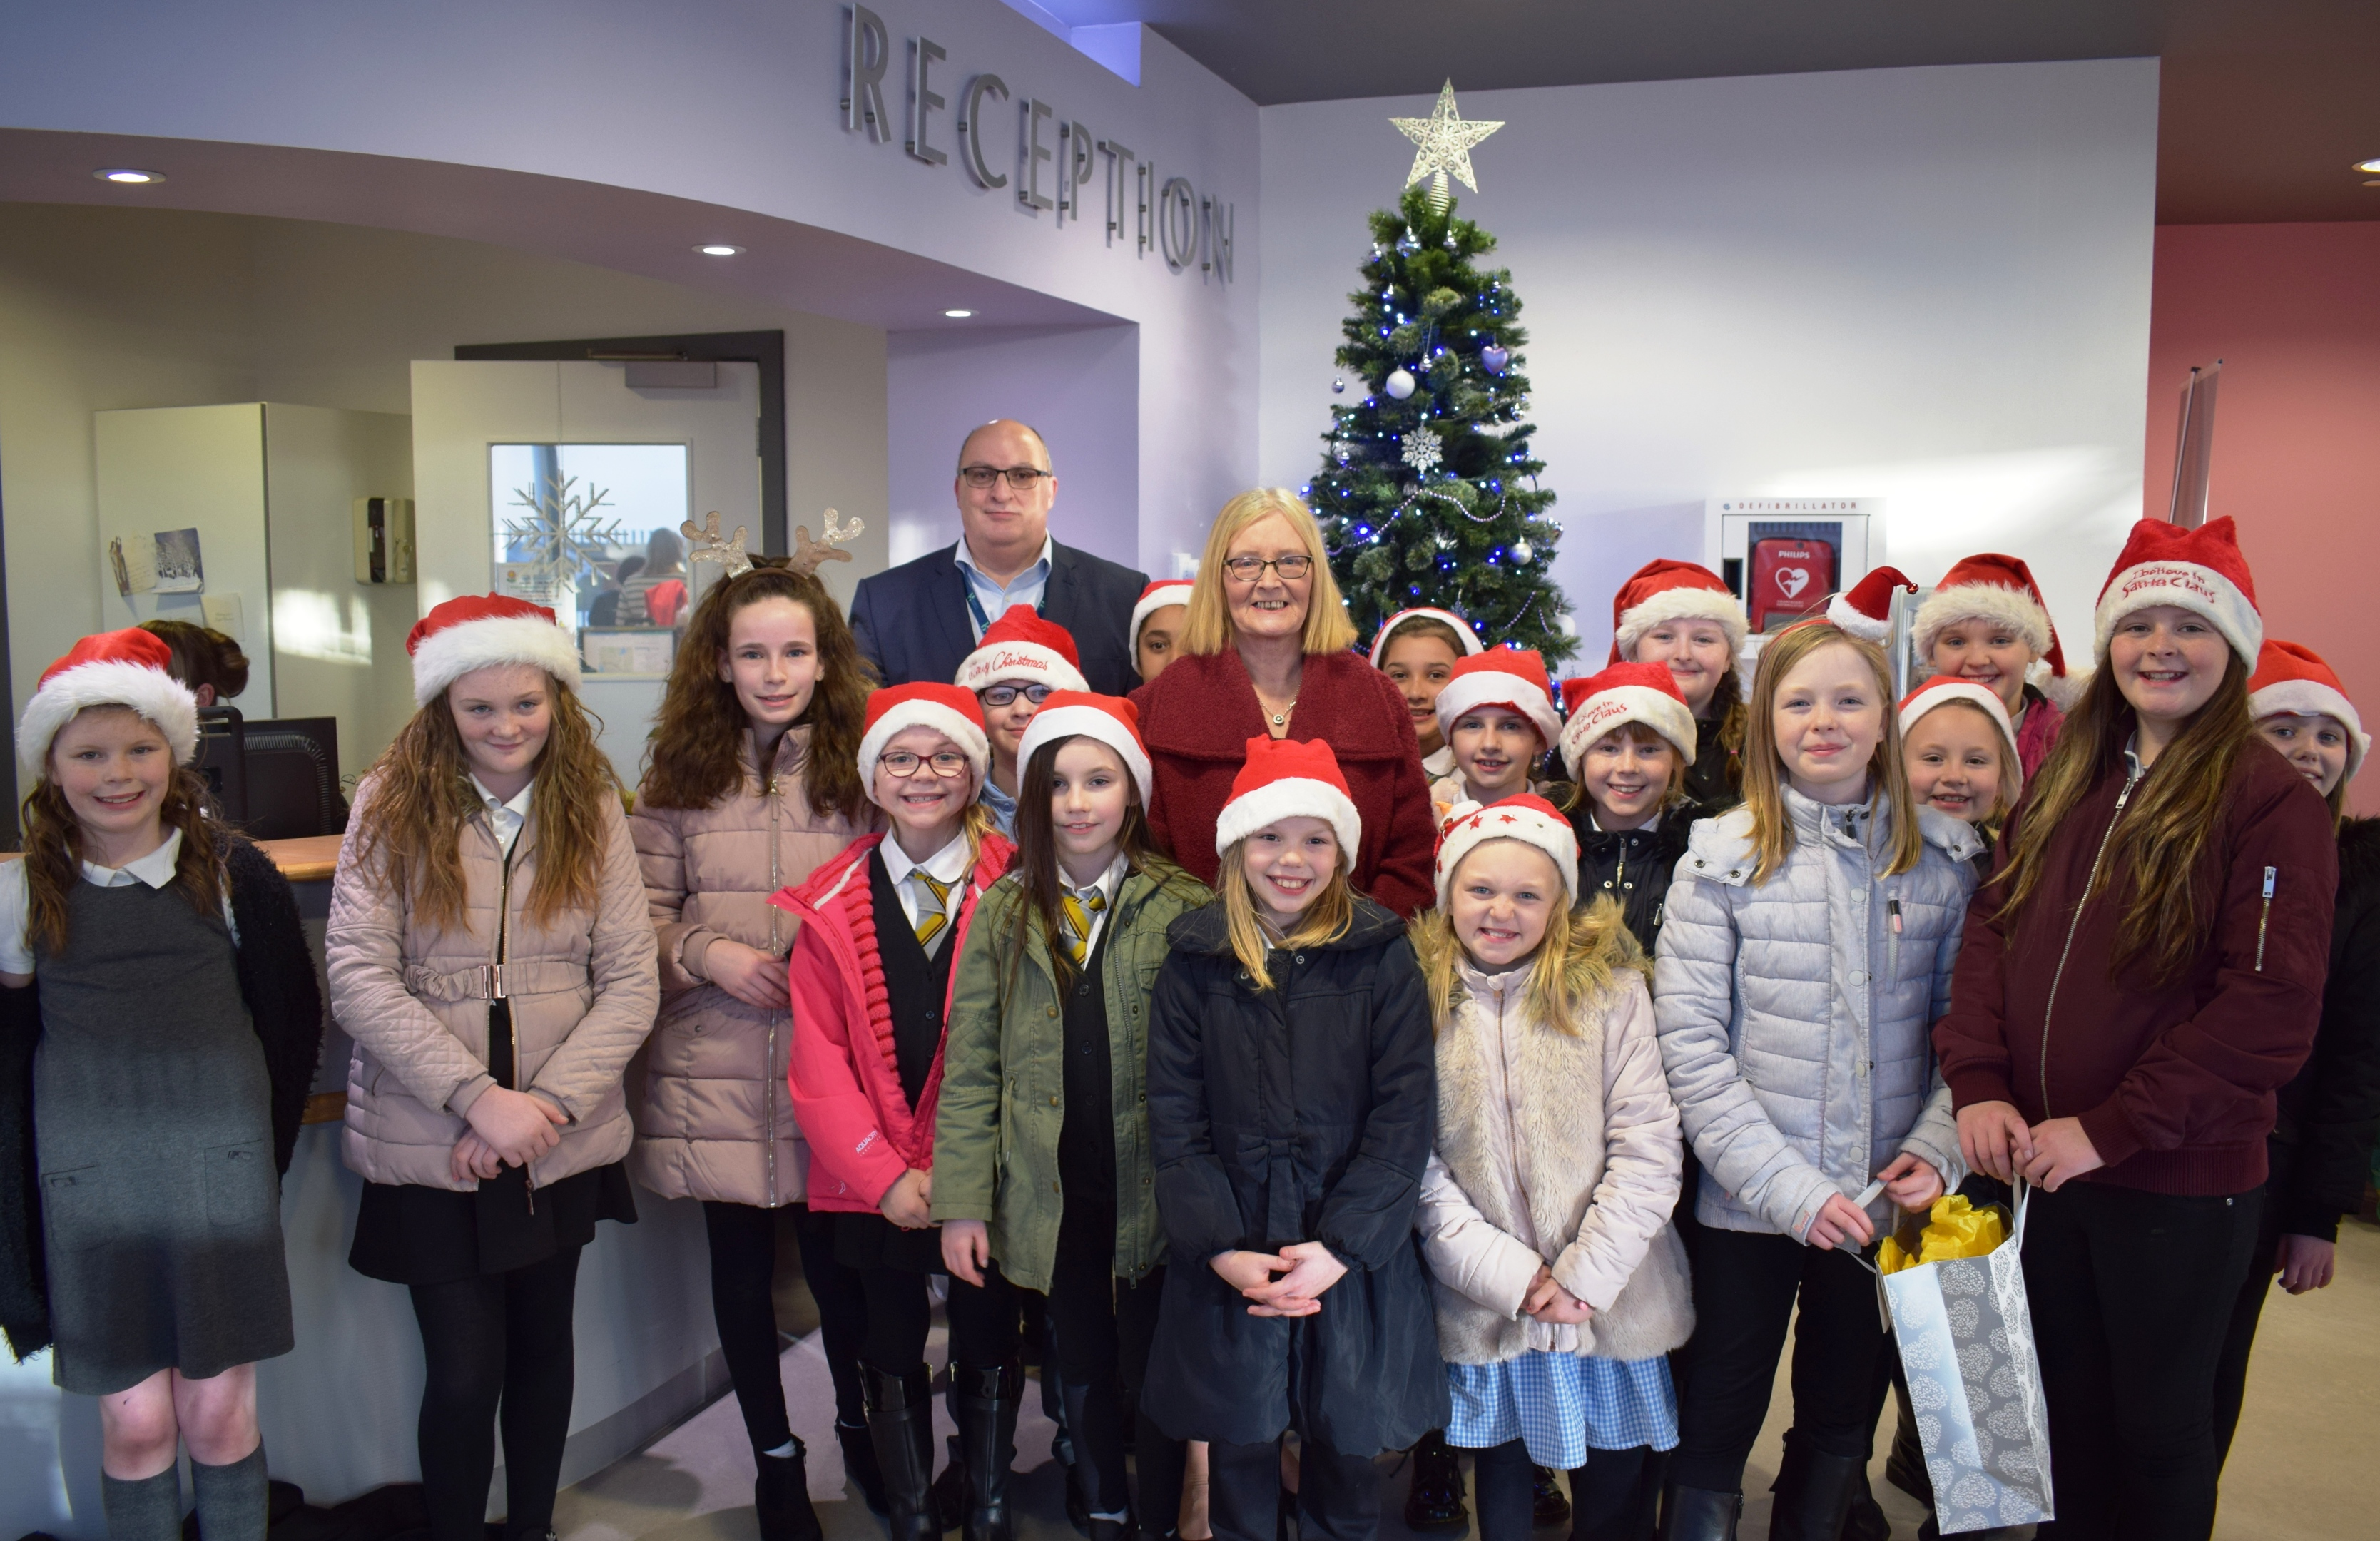 The pupils along with Paul Hawkins and Tricia Marwick.